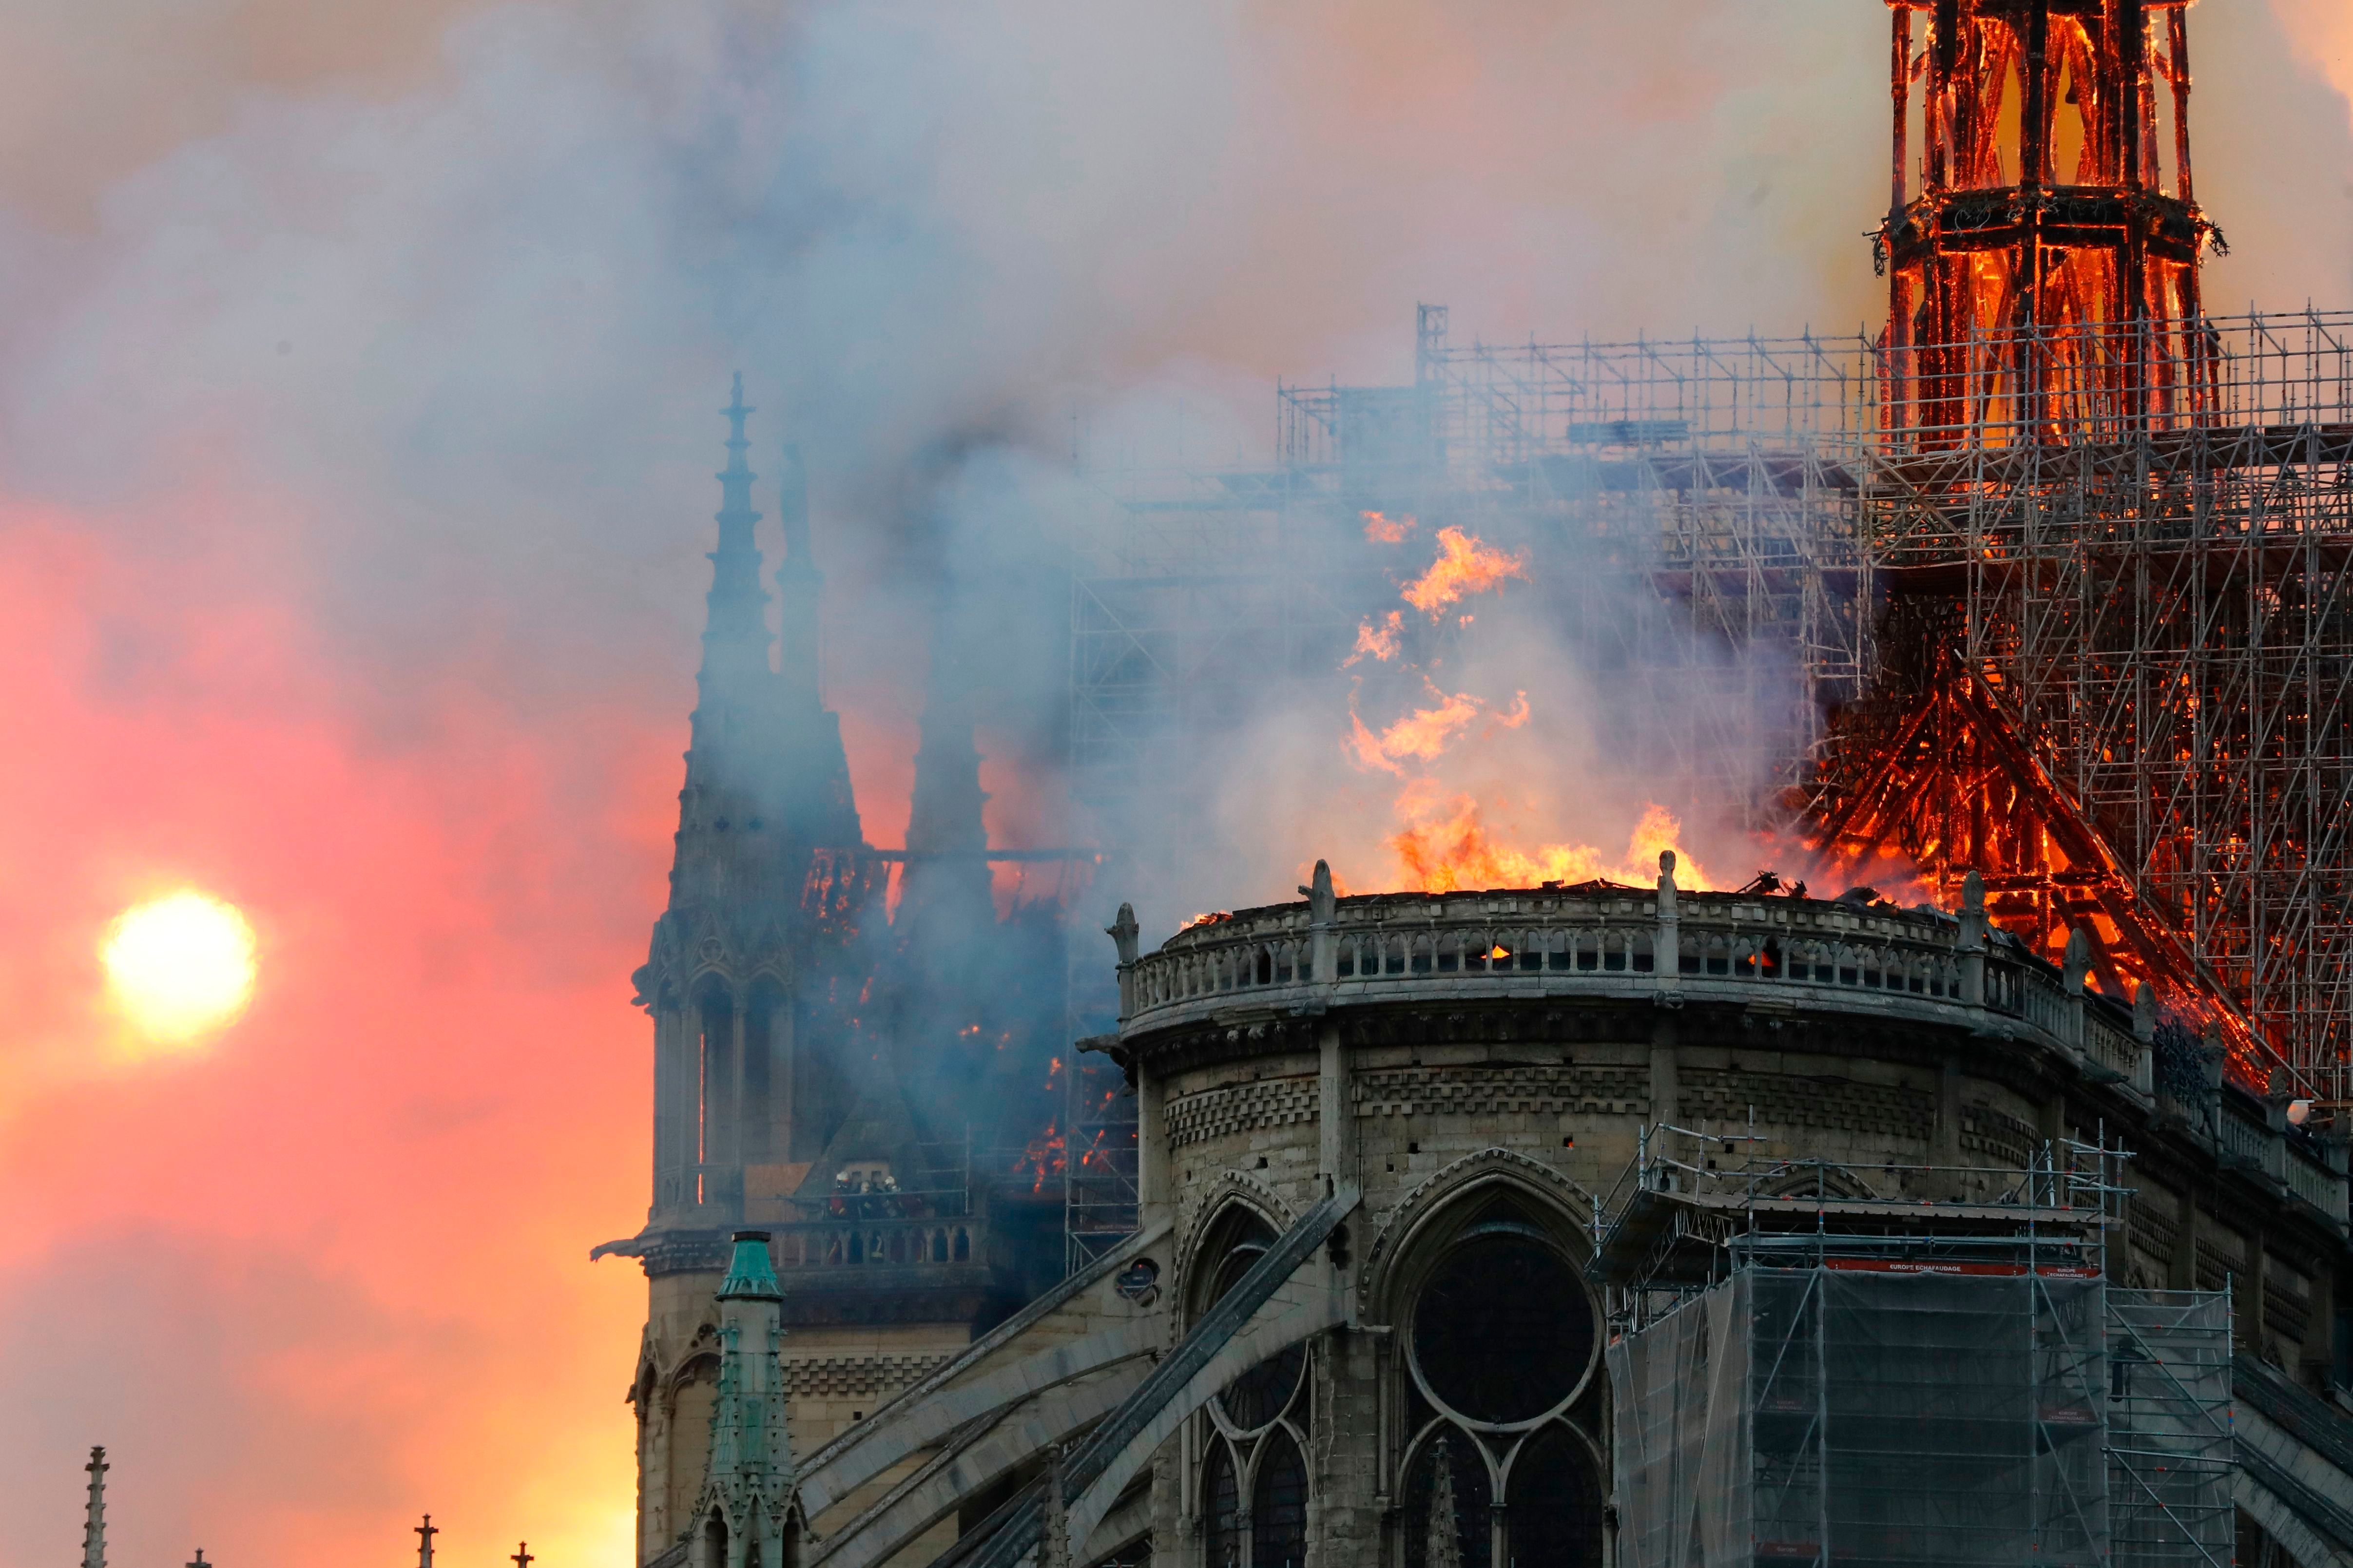 Dramatic Photos Show Notre Dame Cathedral In Paris Engulfed In Flames